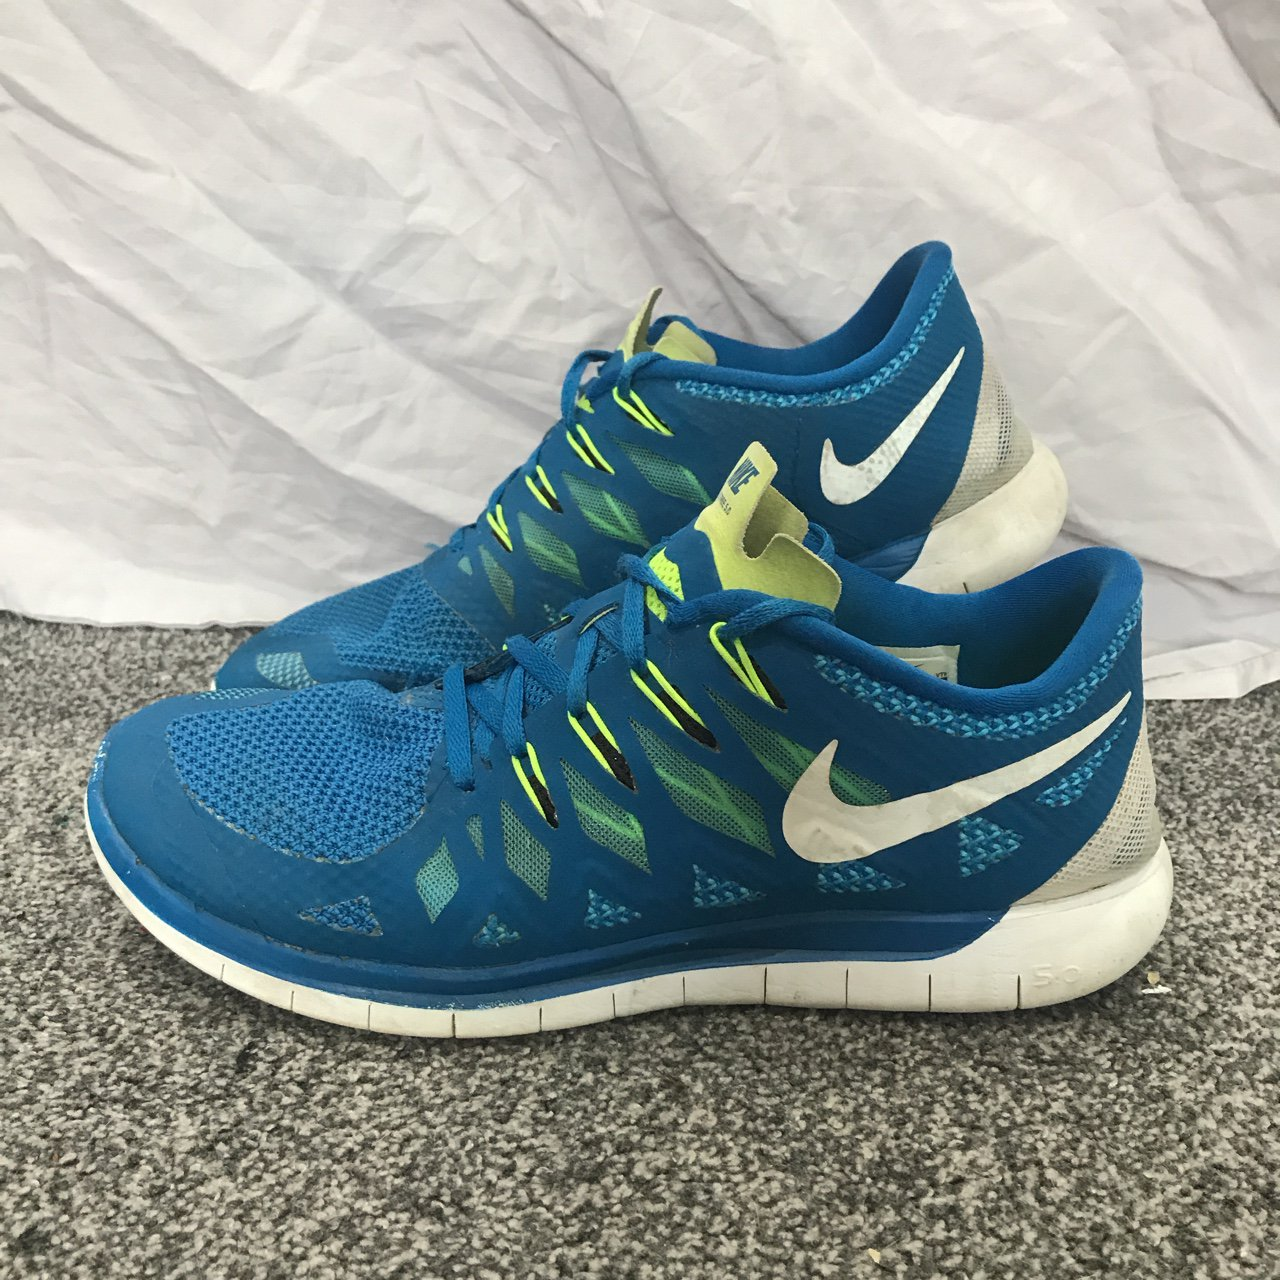 f29c5a1c74c23 NIKE FREE RUN 5.0 - BLUE NEON WHITE CONDITION 5 10 - Used a - Depop